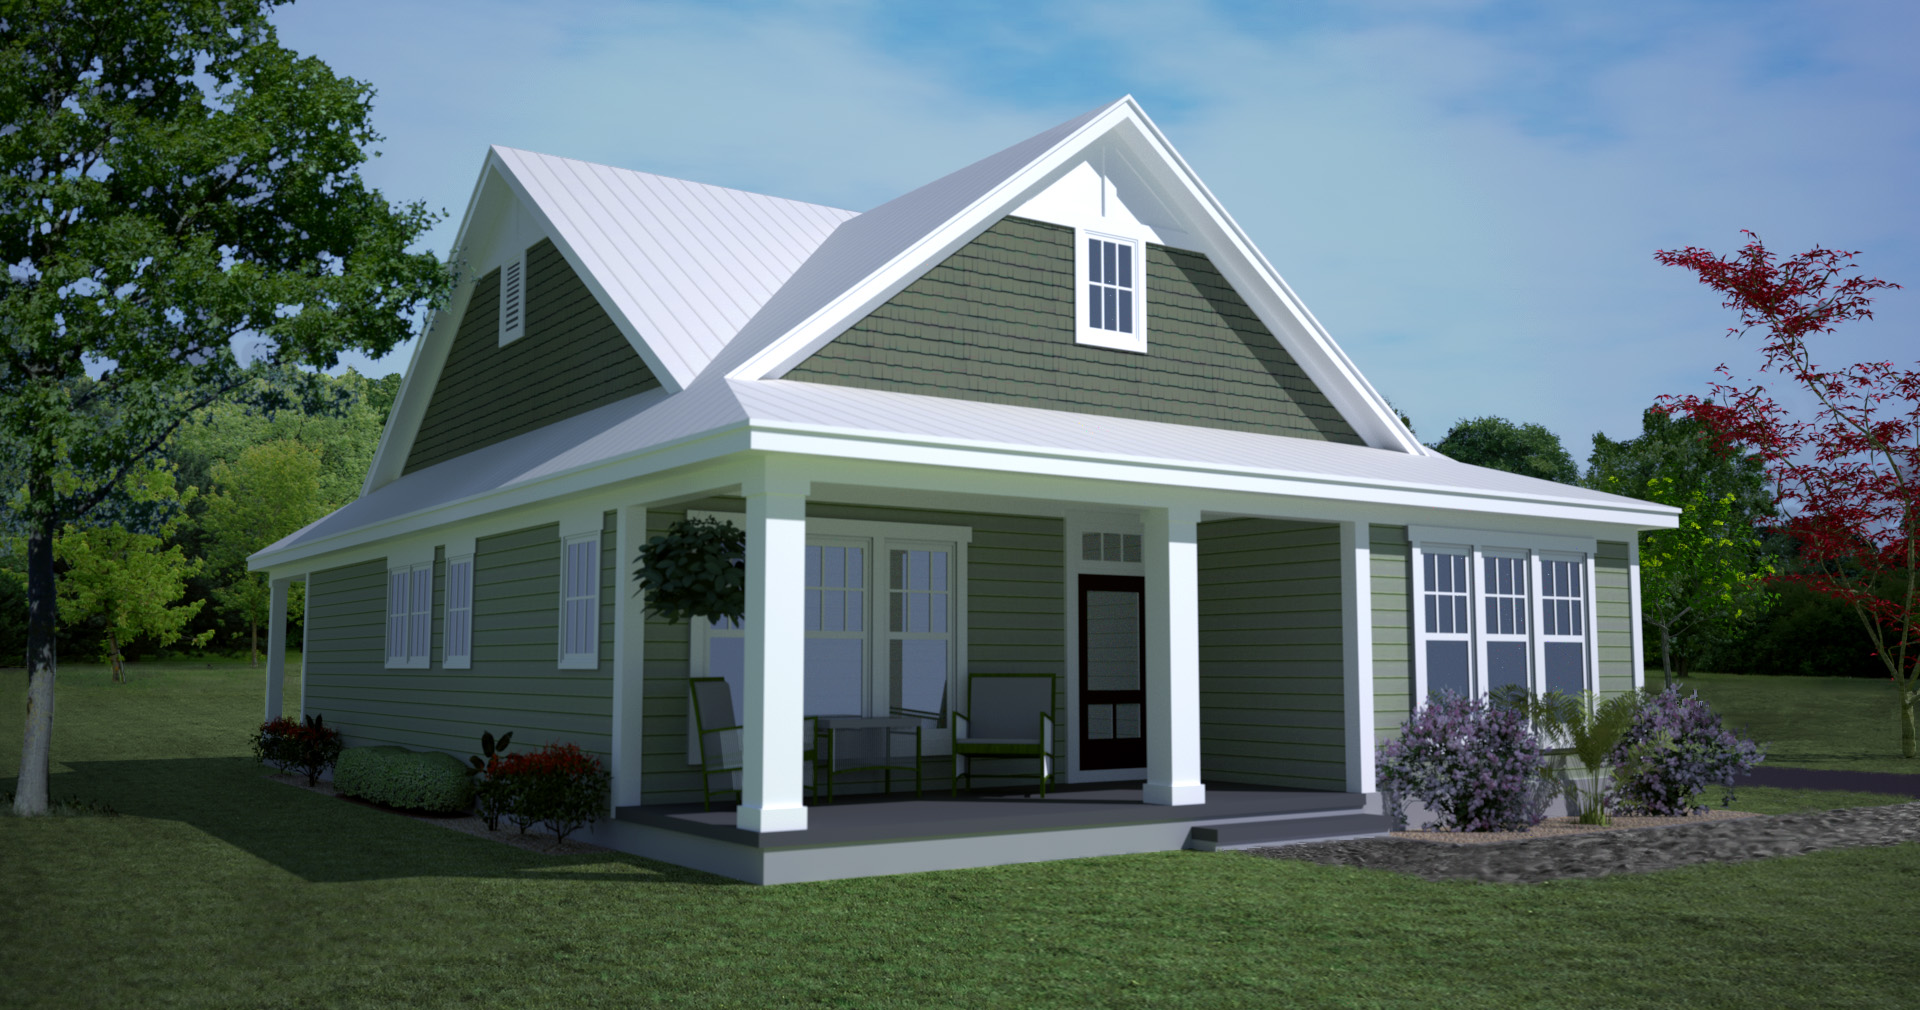 Classic american home styles house design plans for American house styles